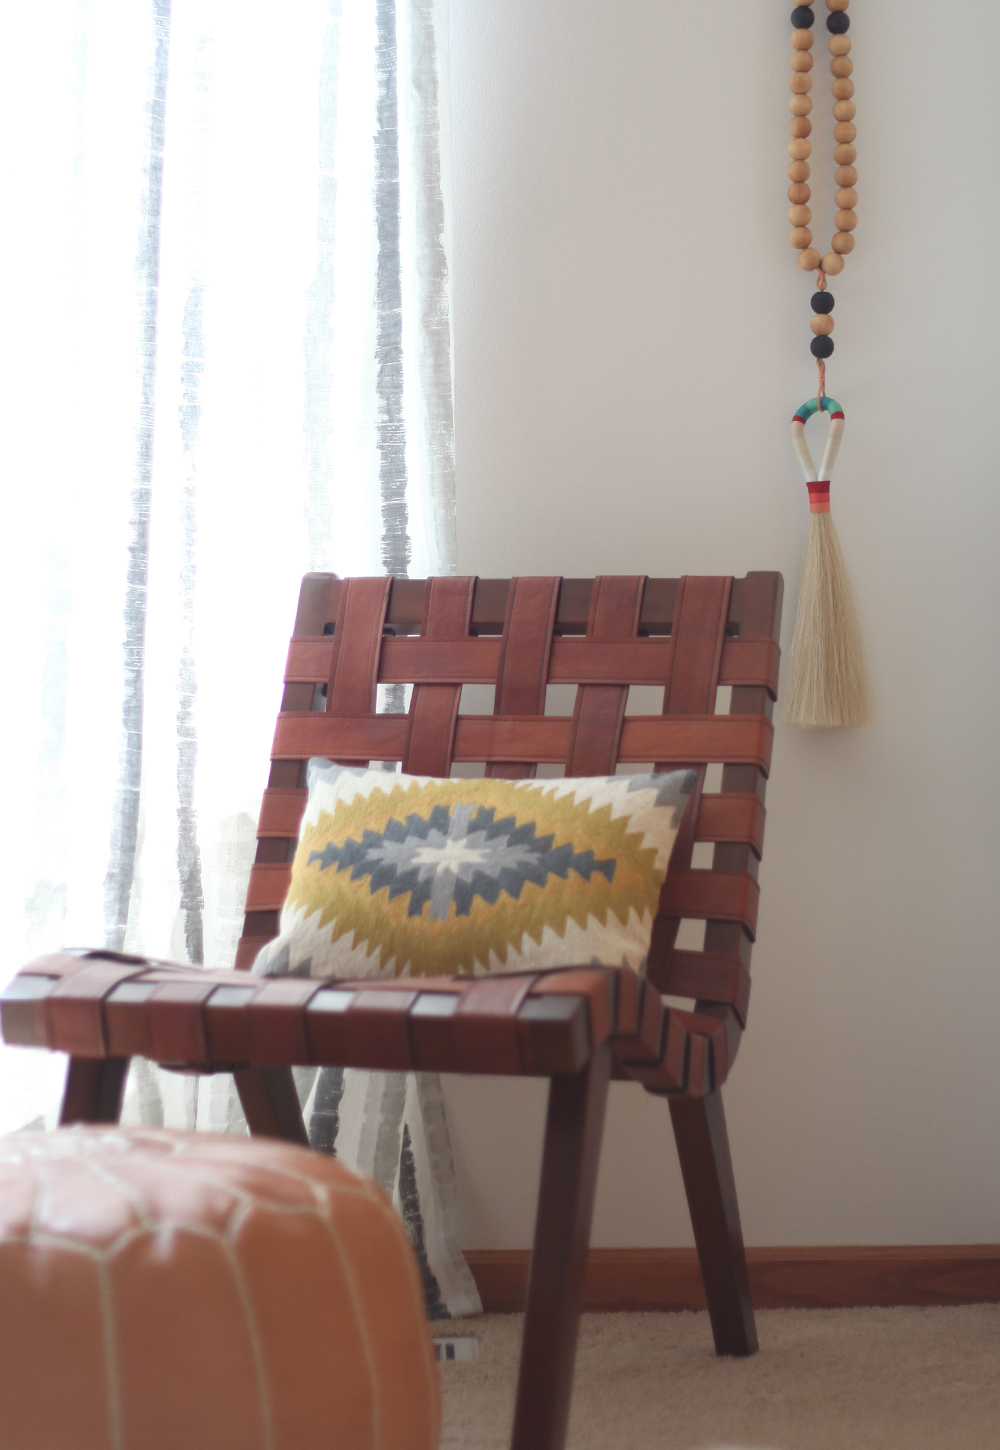 Decorist Design Project. Before and After guest bedroom reveal. A worry bead necklace from Frederick and Mae is hung from a vintage fox hook. And a leather woven chair from Urban Outfitters draws in more texture to the neutral and white room.